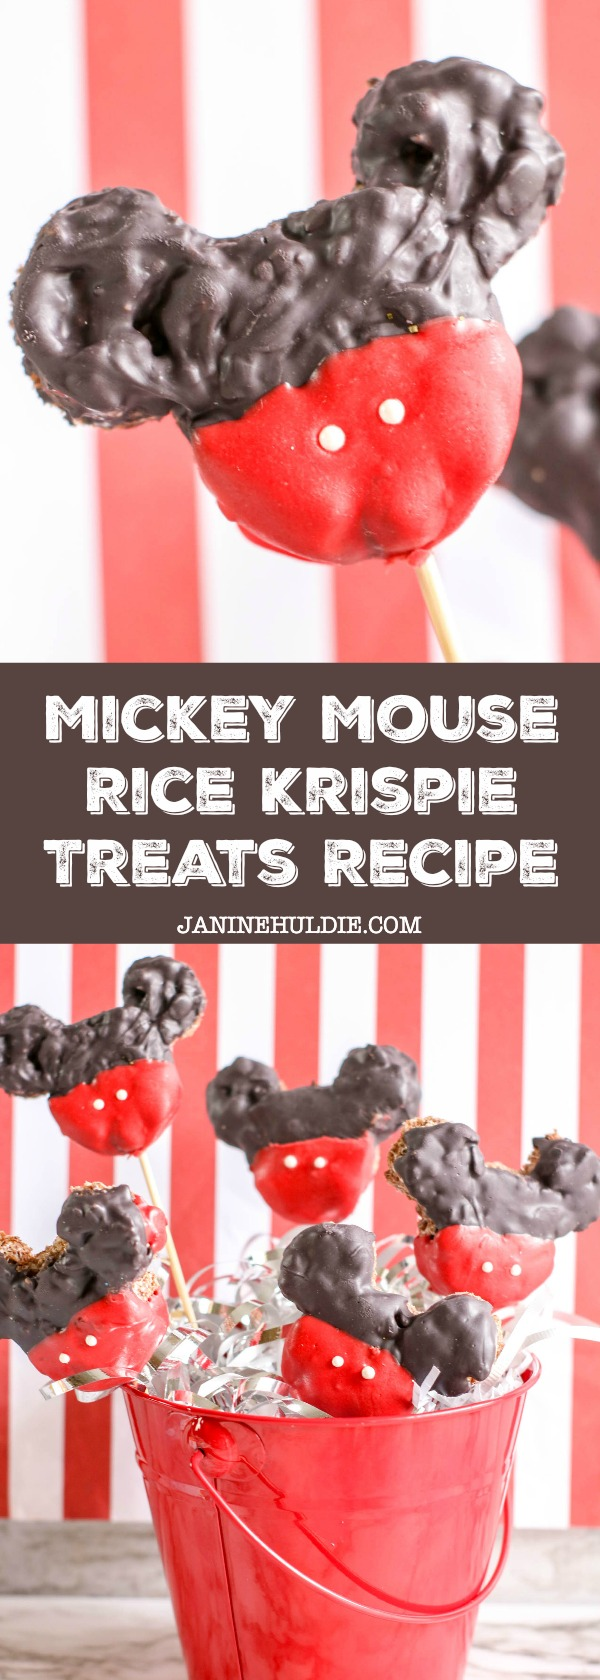 Mickey Mouse Rice Krispie Treats Recipe